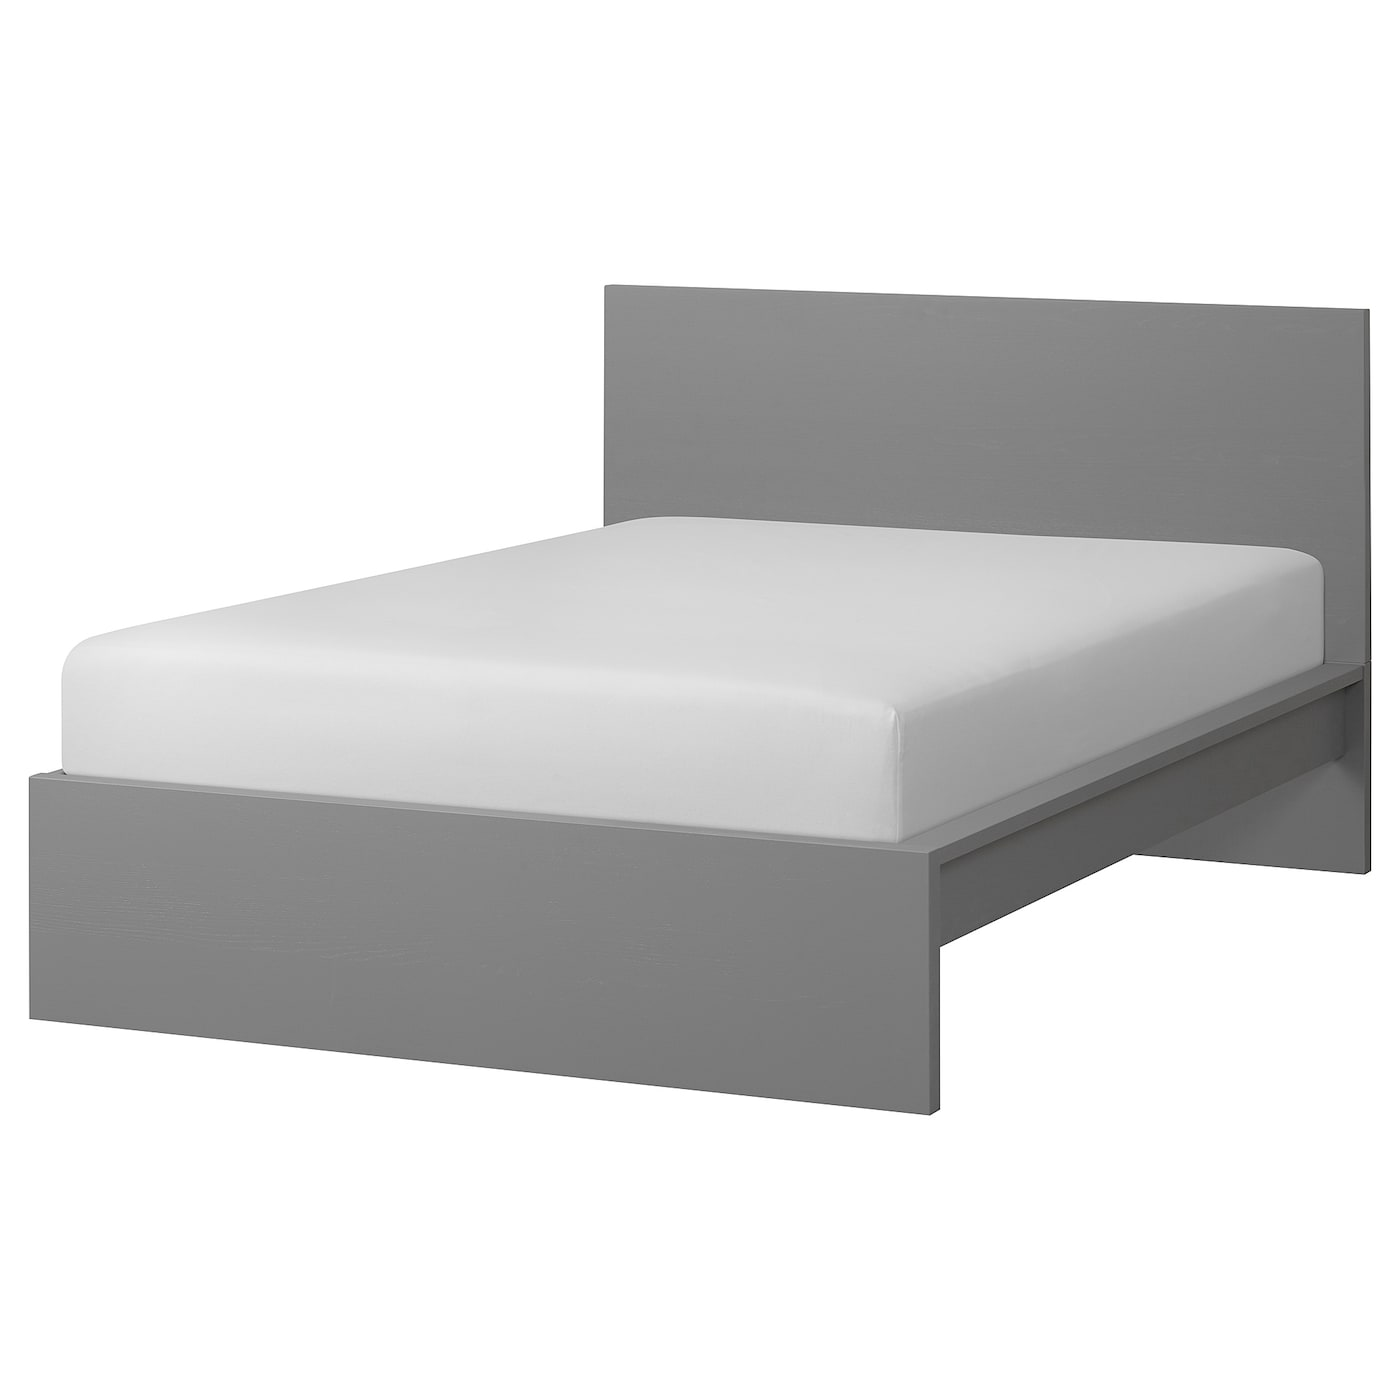 Malm Bed Frame High Gray Stained Lonset Full Ikea